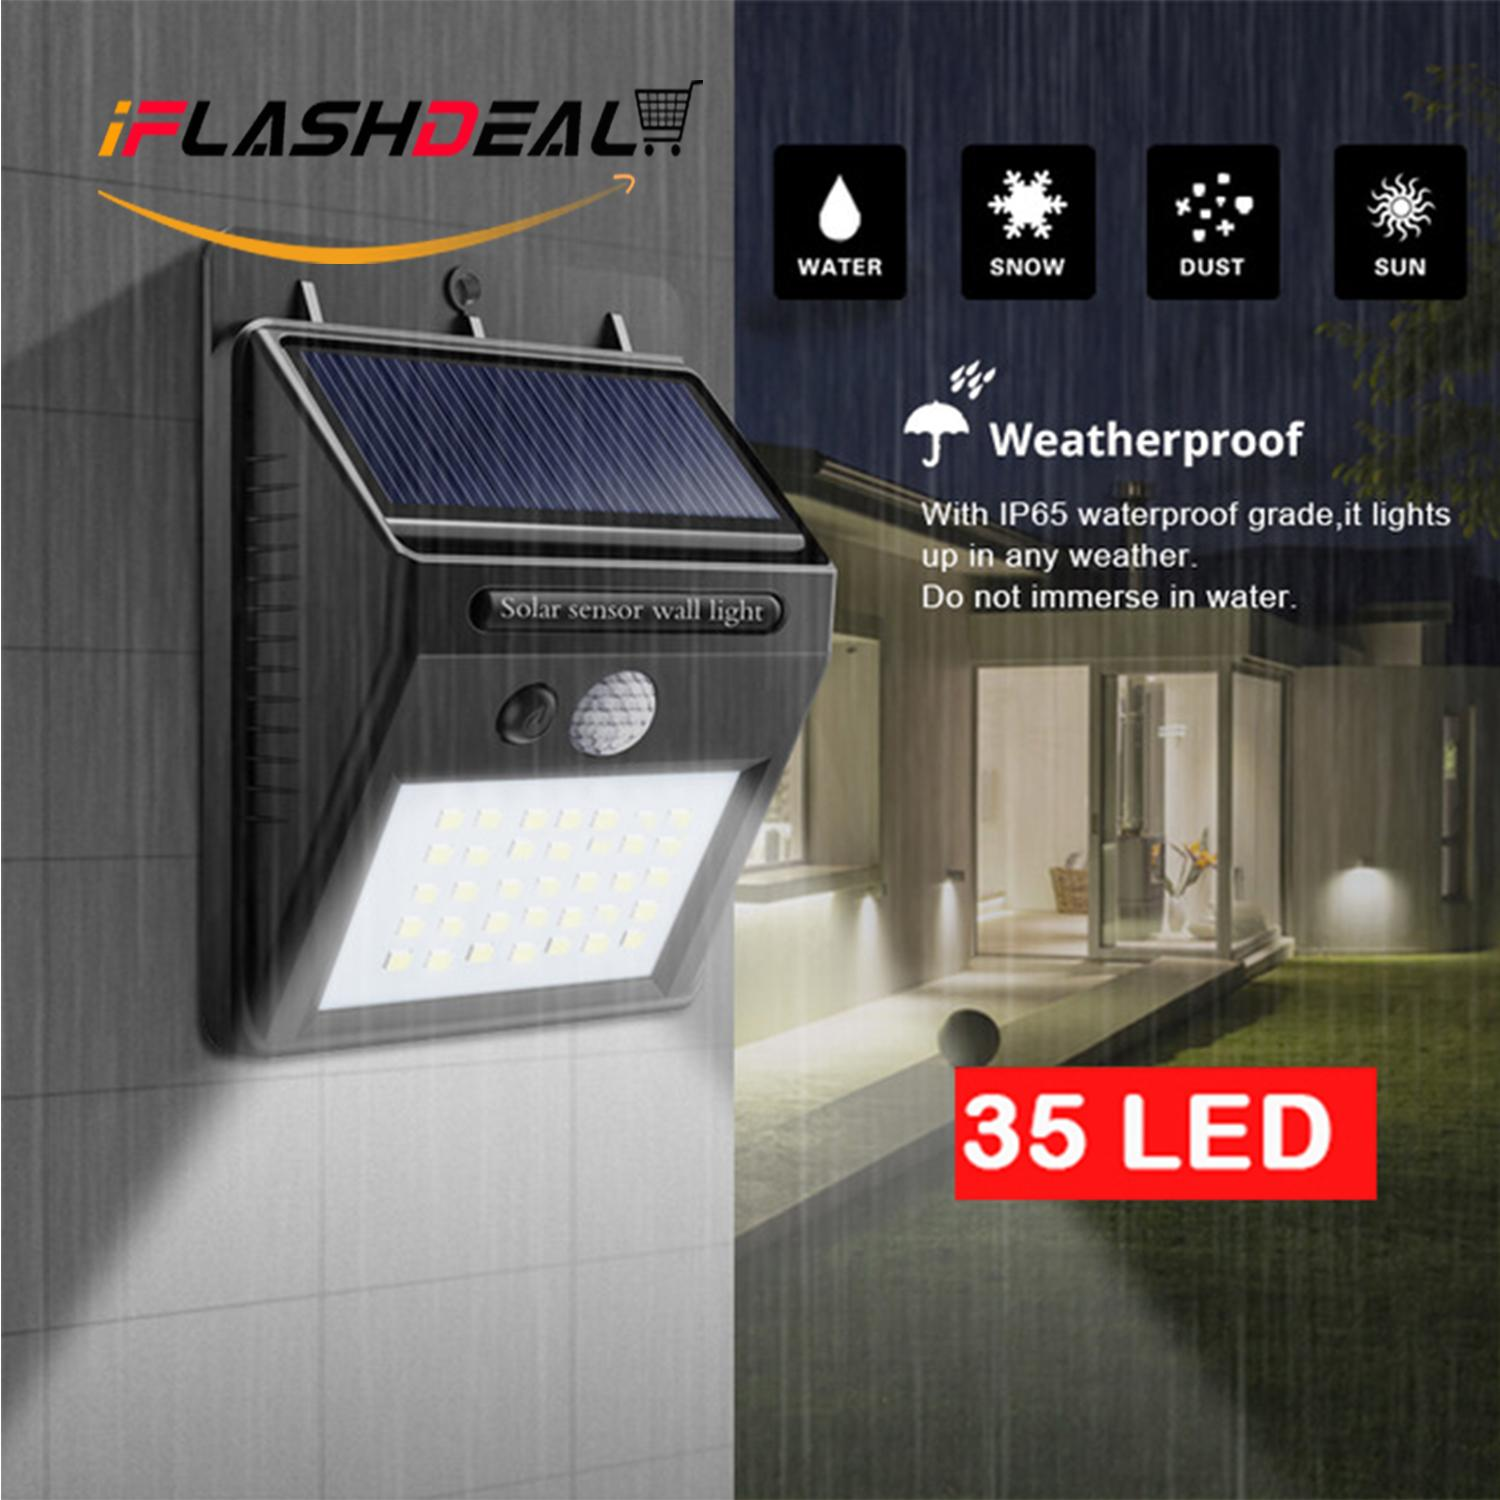 Outdoor Lighting For Sale Lights Prices Brands Review Wiring A Light Outside Iflashdeal 35 Led Solar Powered Wall Waterproof Lamp Motion Sensor Wireless Security